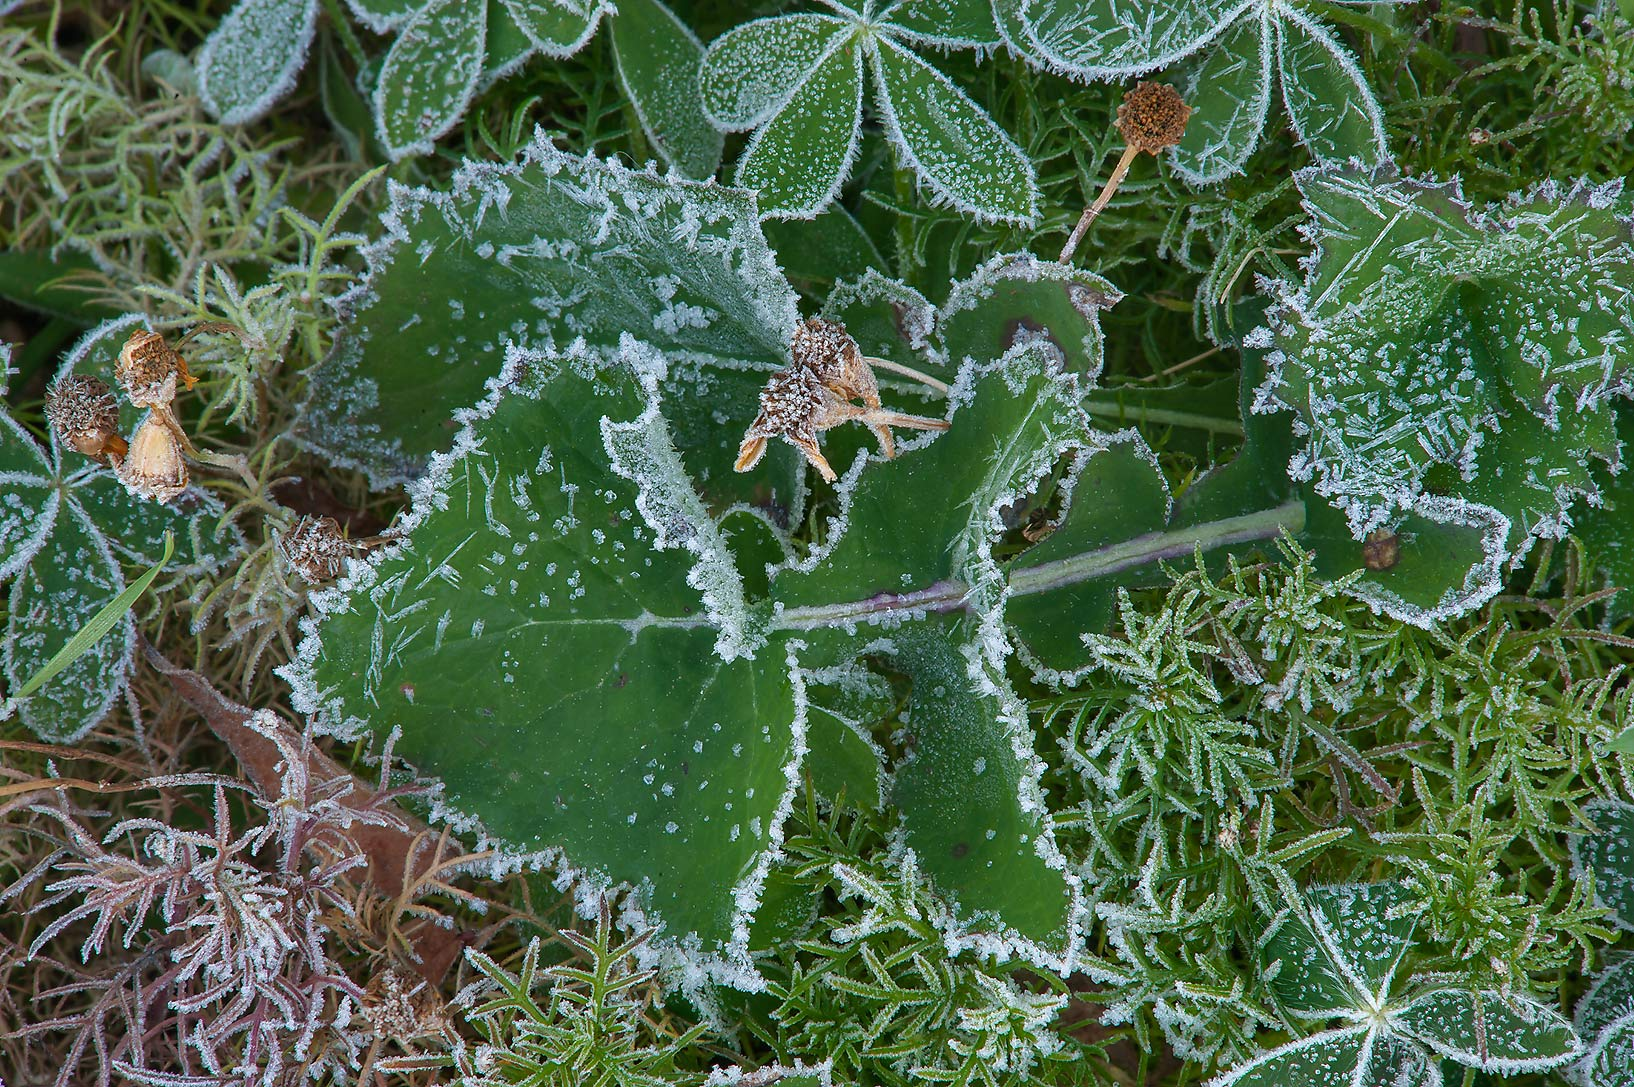 Sow thistle in freeze in TAMU Horticultural...M University. College Station, Texas